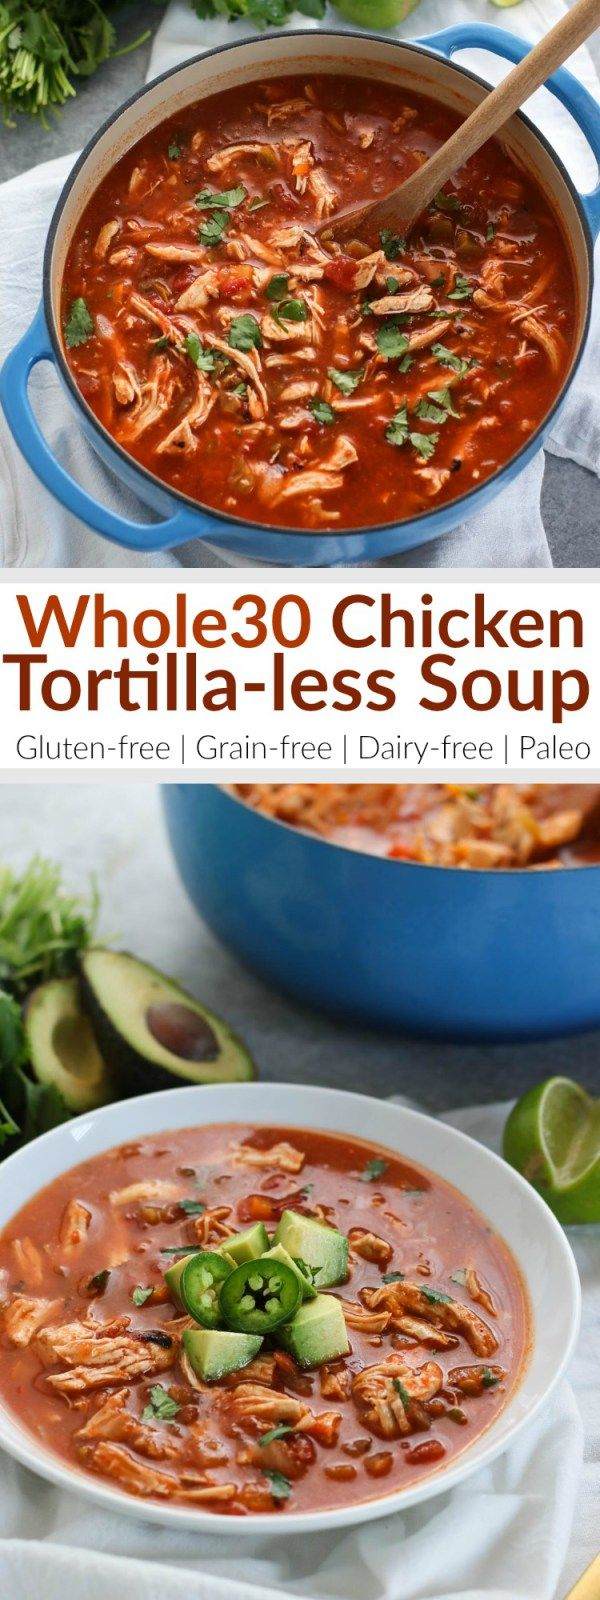 A hearty soup with the flavors of your favorite Mexican dishes. We've kept it Whole30-compliant by leaving out the traditional tortilla strips but if you're missing that little crunch on top, we suggest adding thinly sliced radishes or jicama.   Whole30   Gluten-free   Grain-free   Paleo   Dairy-free   https://therealfoodrds.com/chicken-tortilla-less-soup/